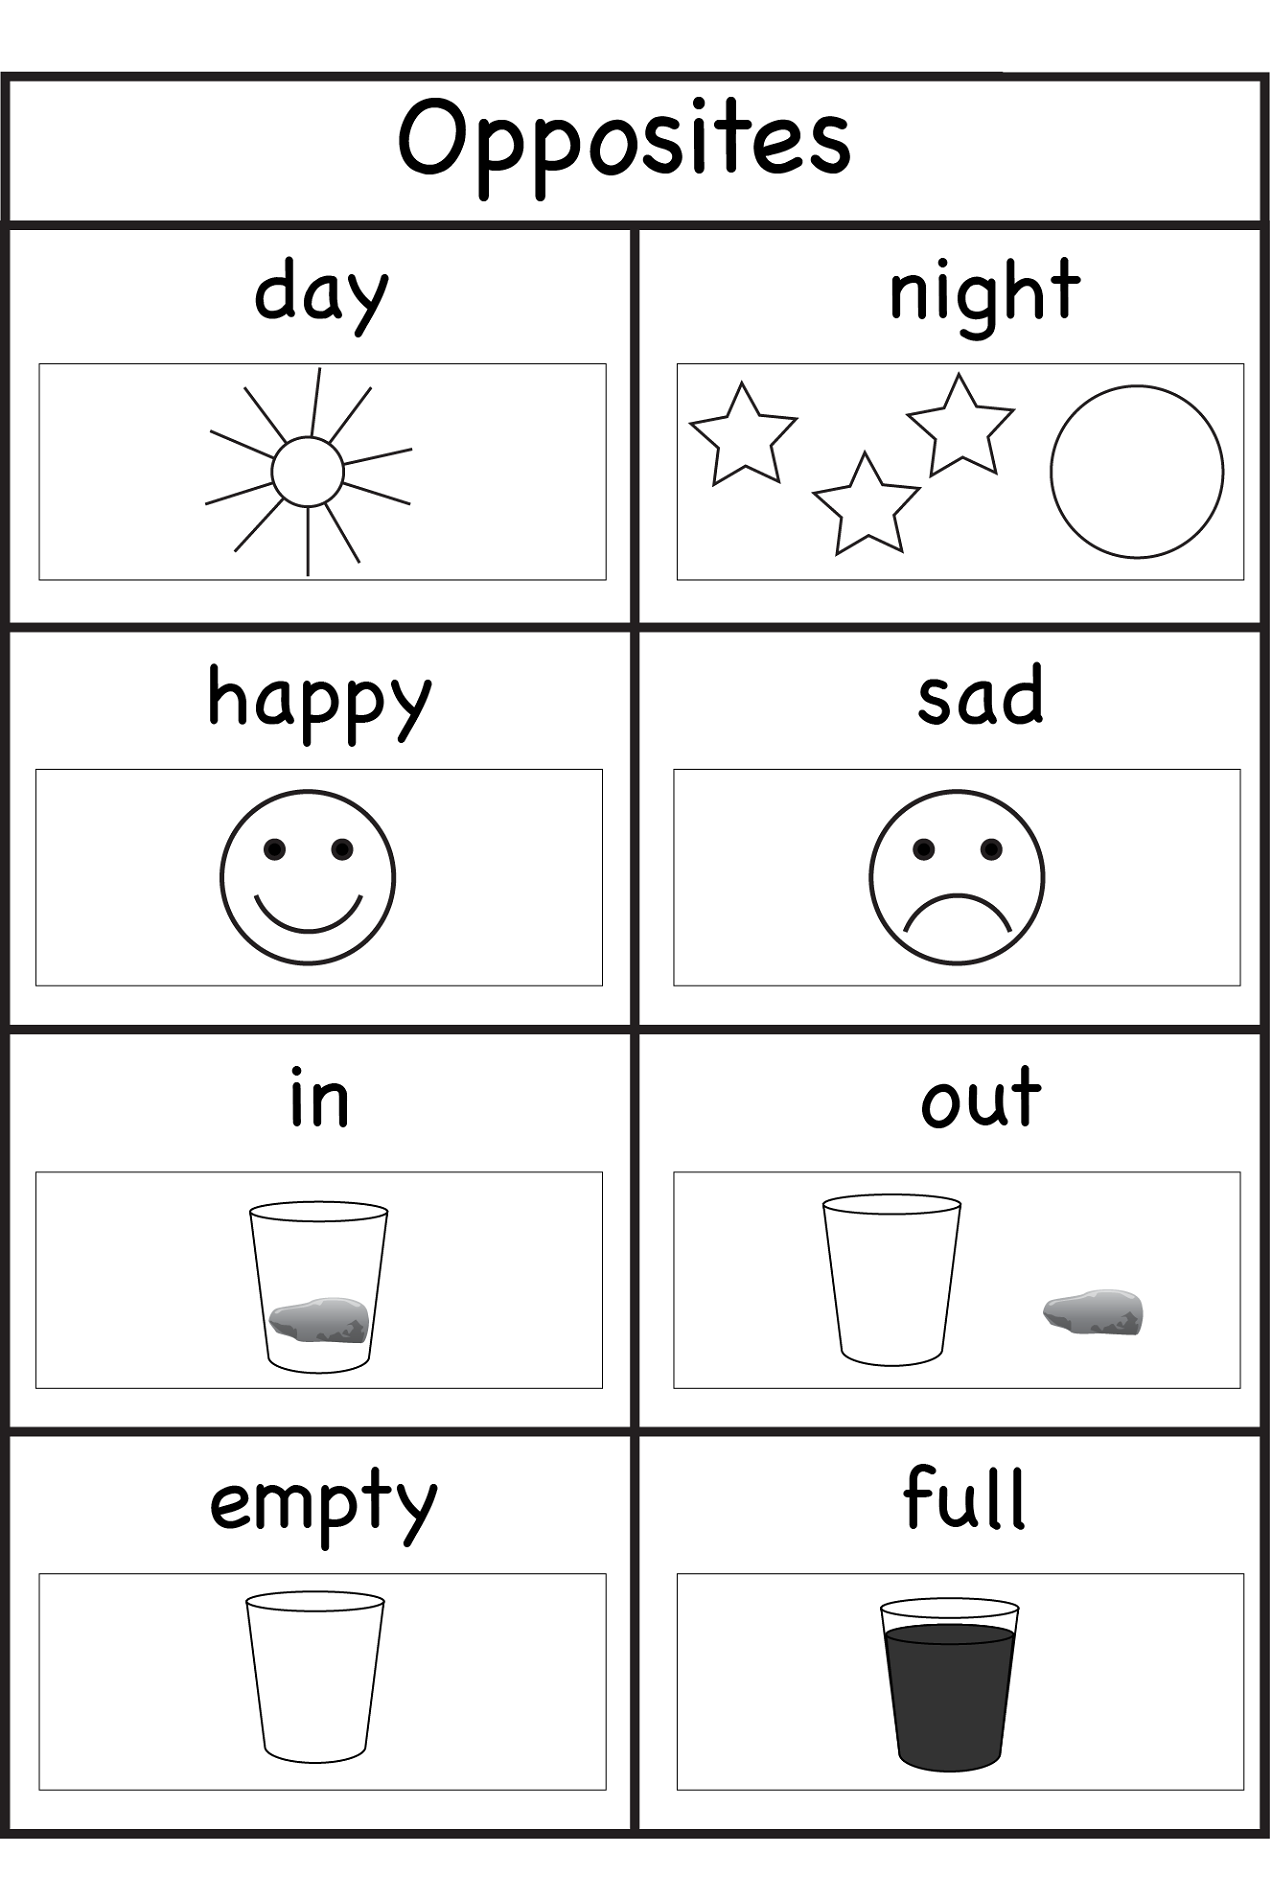 Printables Worksheets For Three Year Olds printables worksheets for three year olds safarmediapps school 3 thousands of worksheet activities